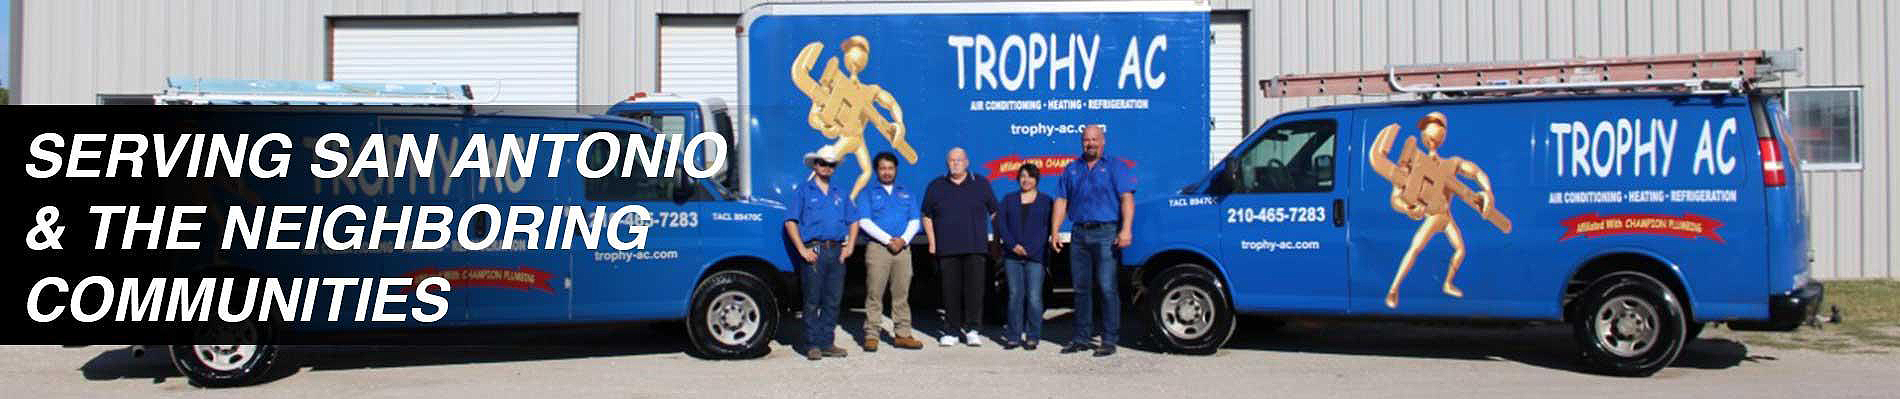 Serving San Antonio and Neighboring Communities